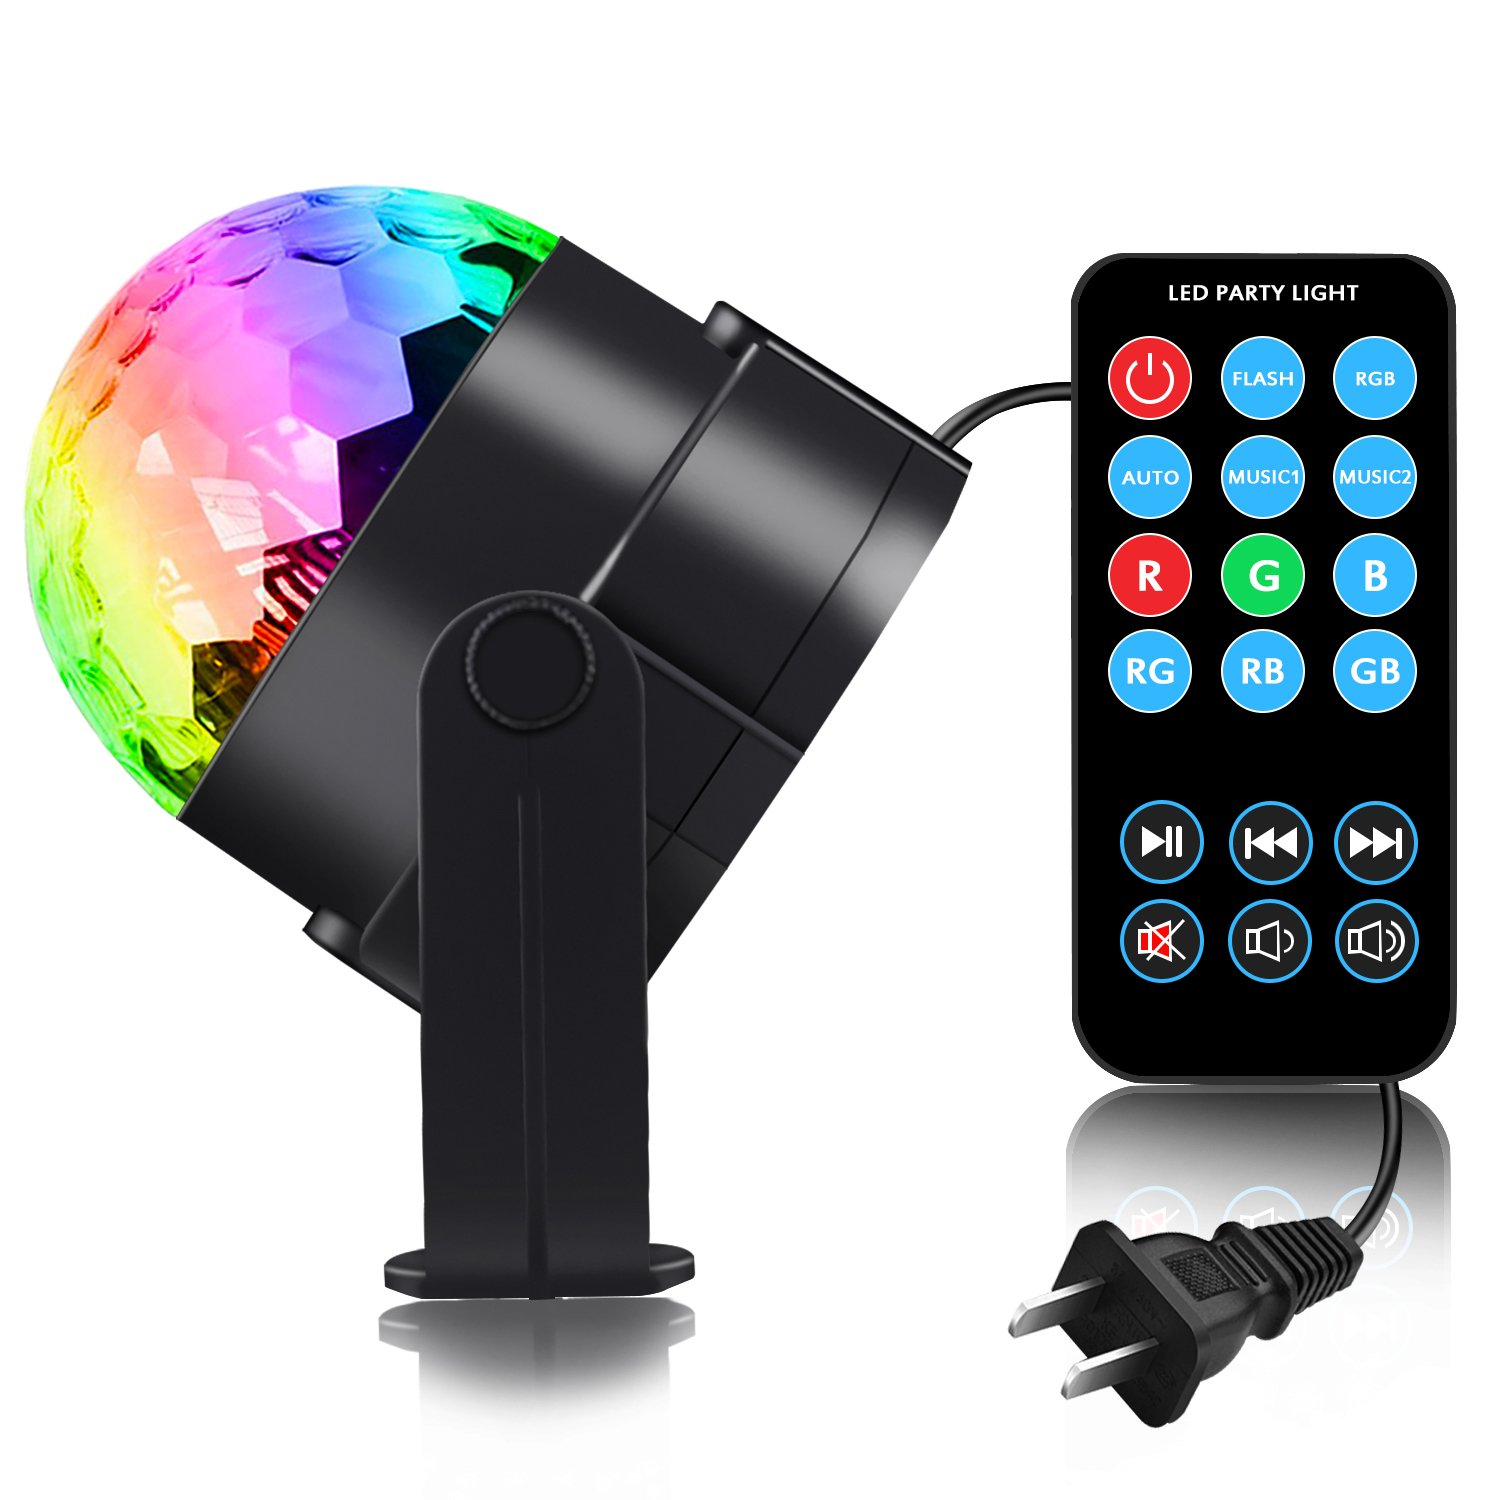 Spriak Disco Light Disco Ball LED RGB Party Lights Sound Activated Multiple Modes Supplies Strobe Light Dance Light for Kid, Parties, Bedroom, Birthday (with Remote)